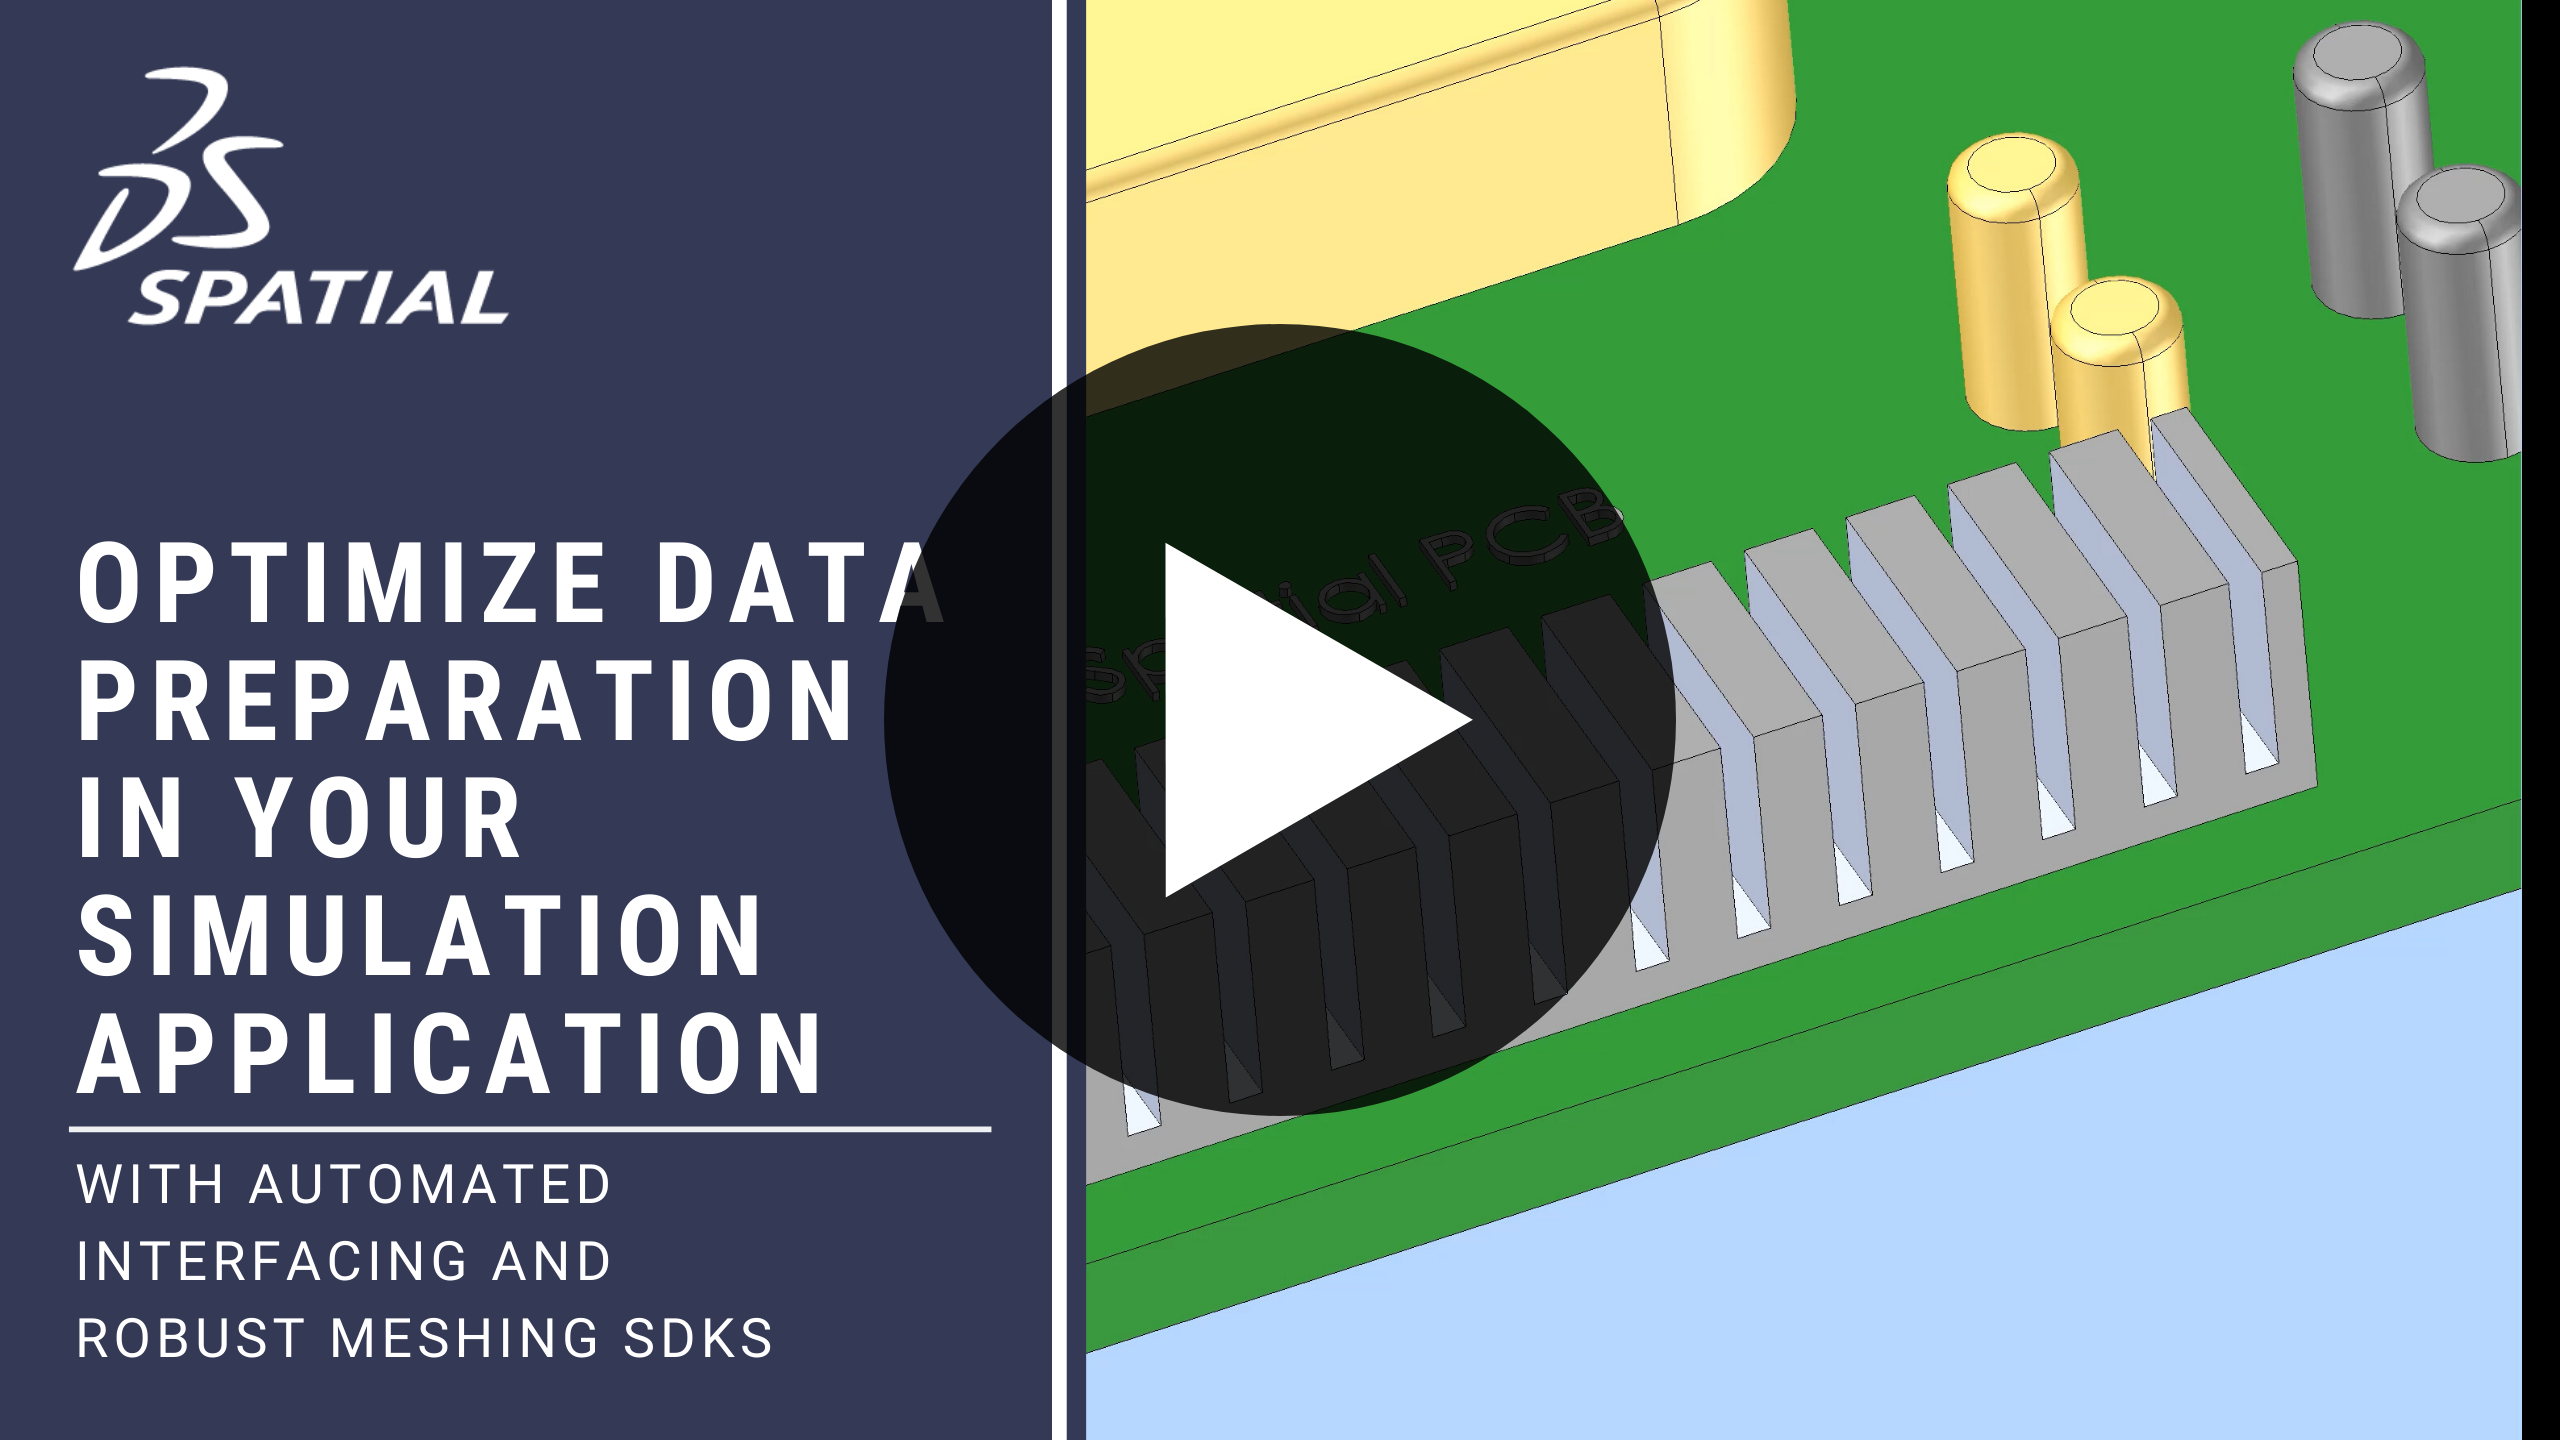 Optimize Data Preparation YouTube